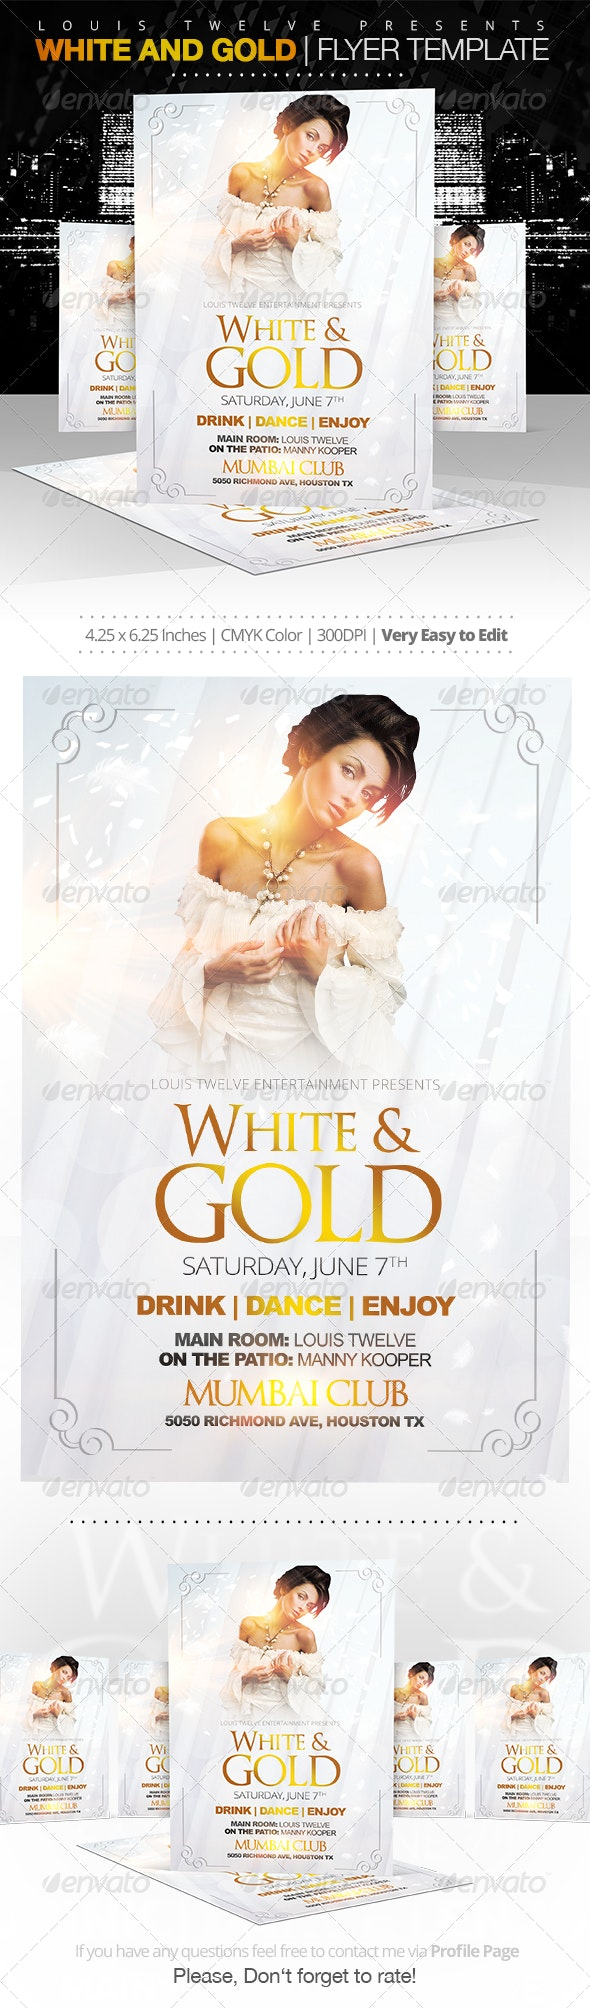 White and Gold Party Flyer Template - Clubs & Parties Events